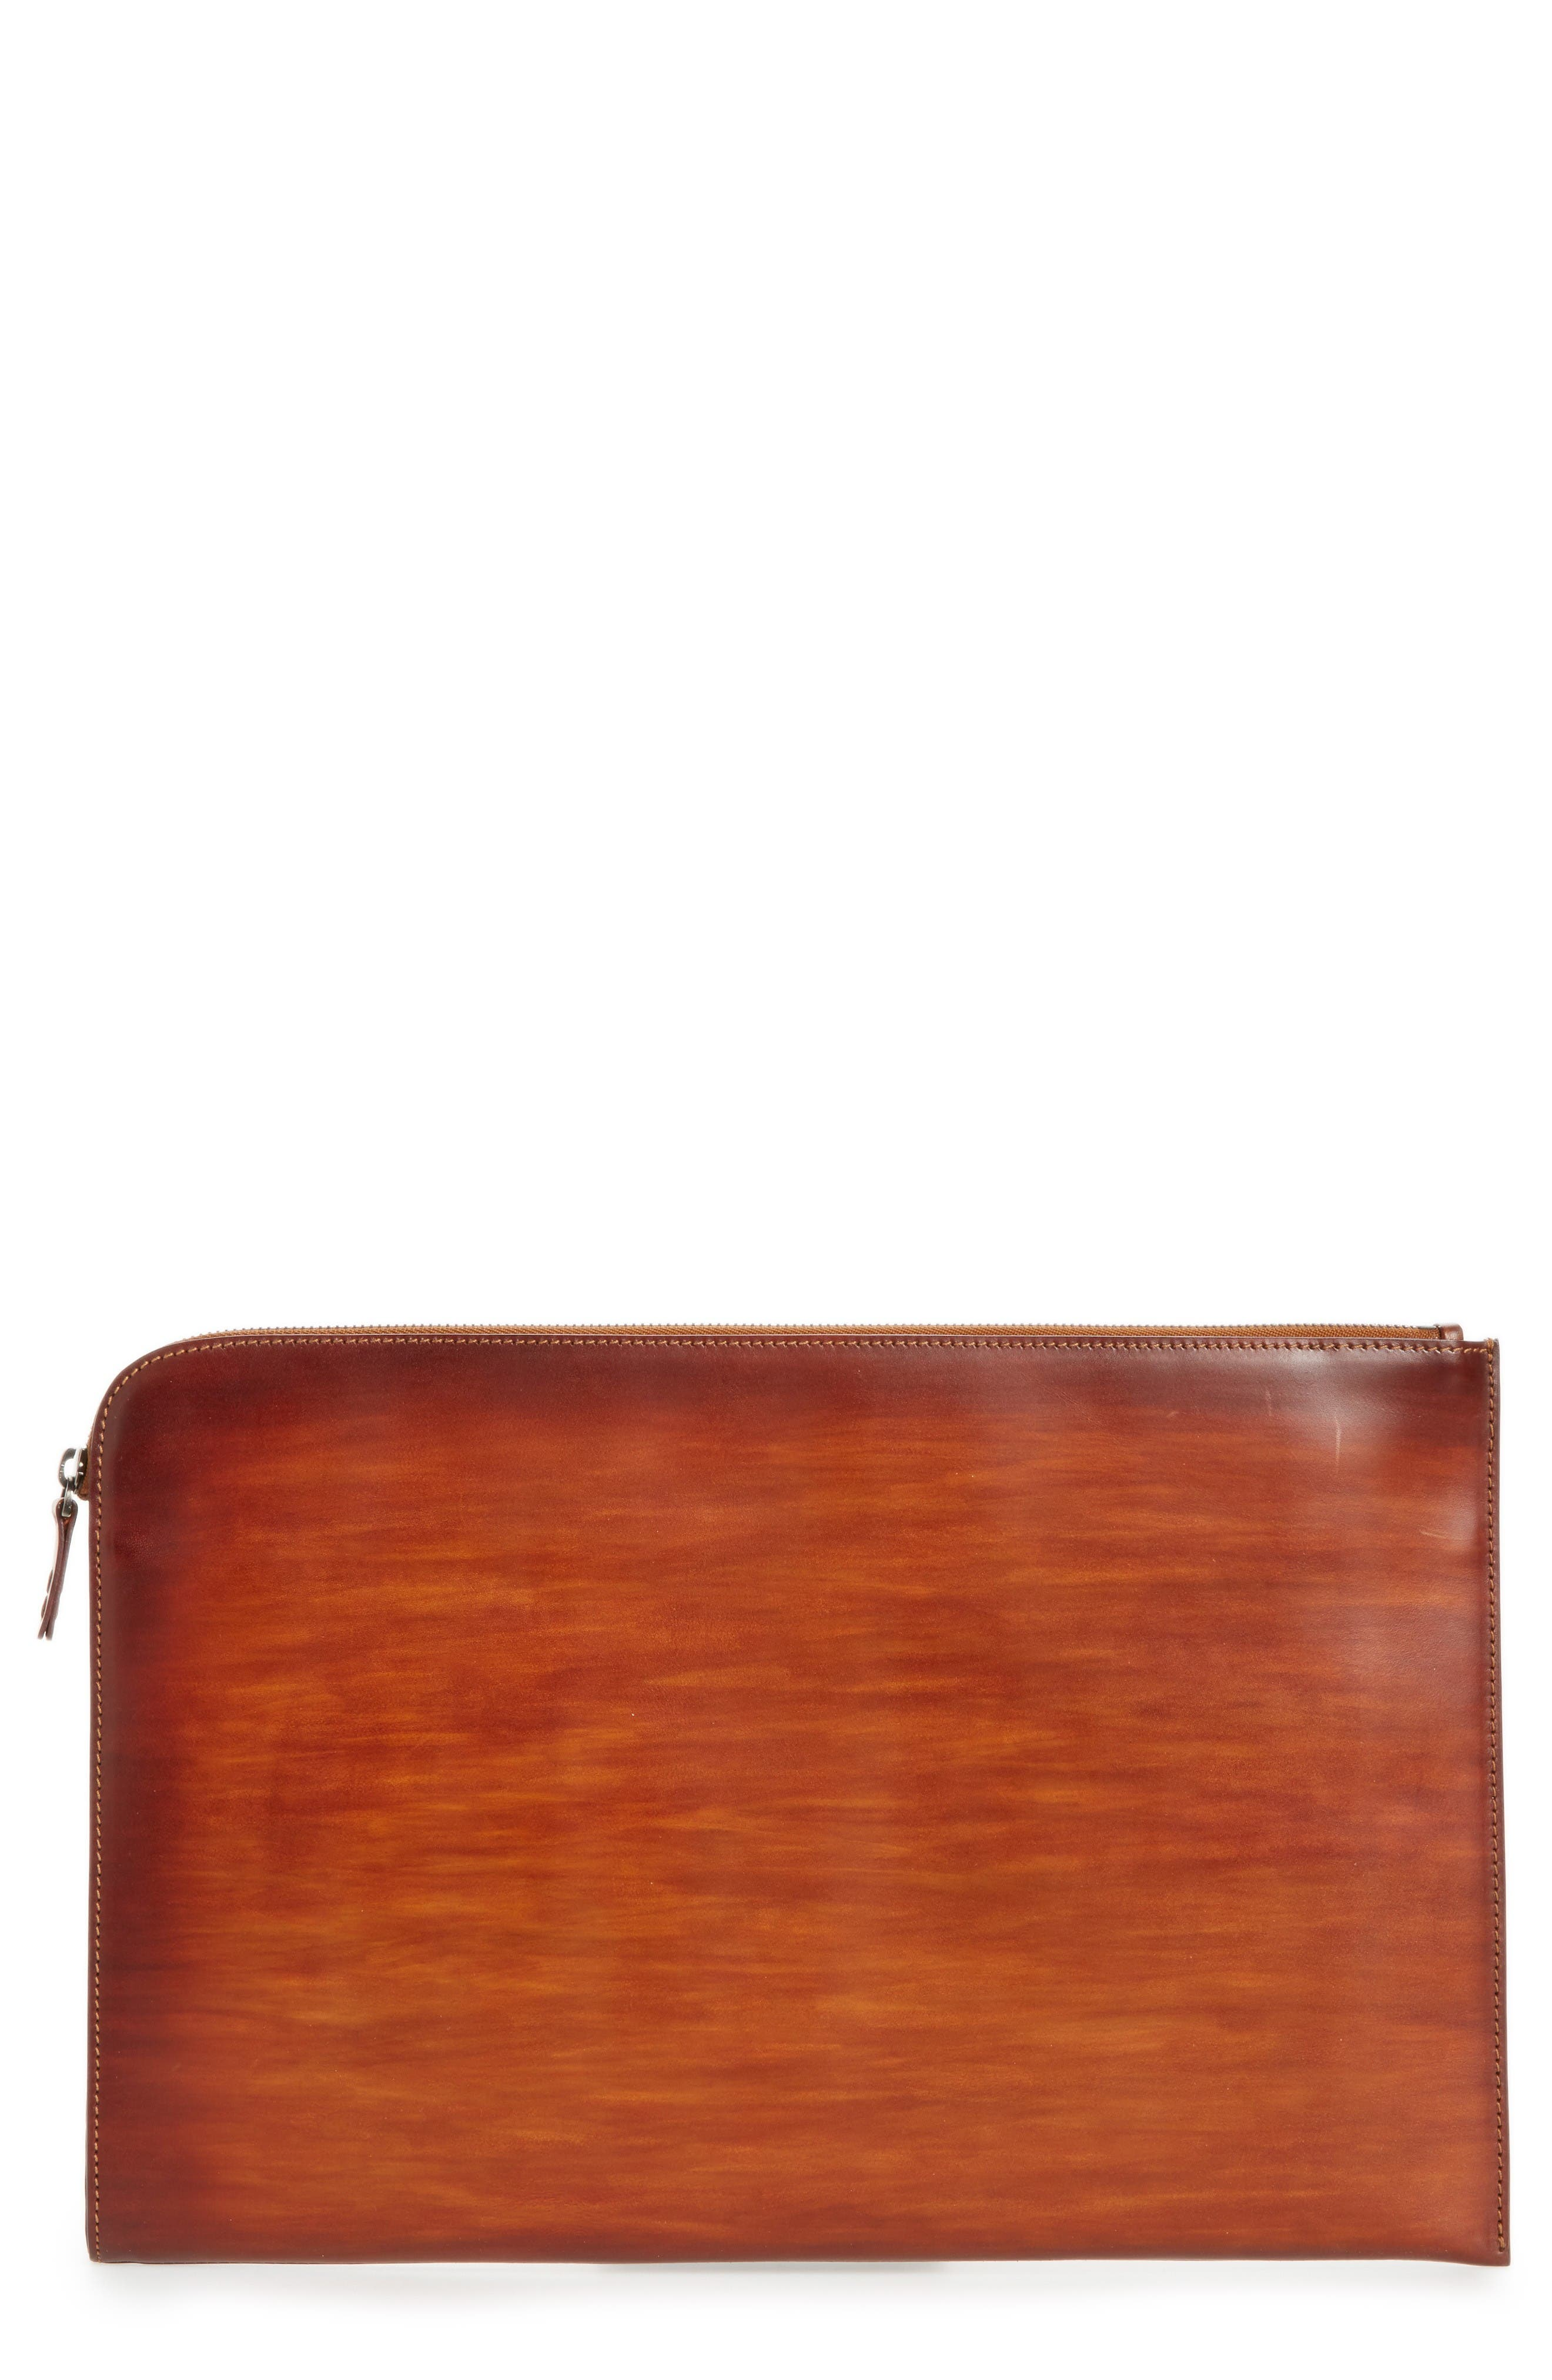 Leather Portfolio,                         Main,                         color, Mid Brown